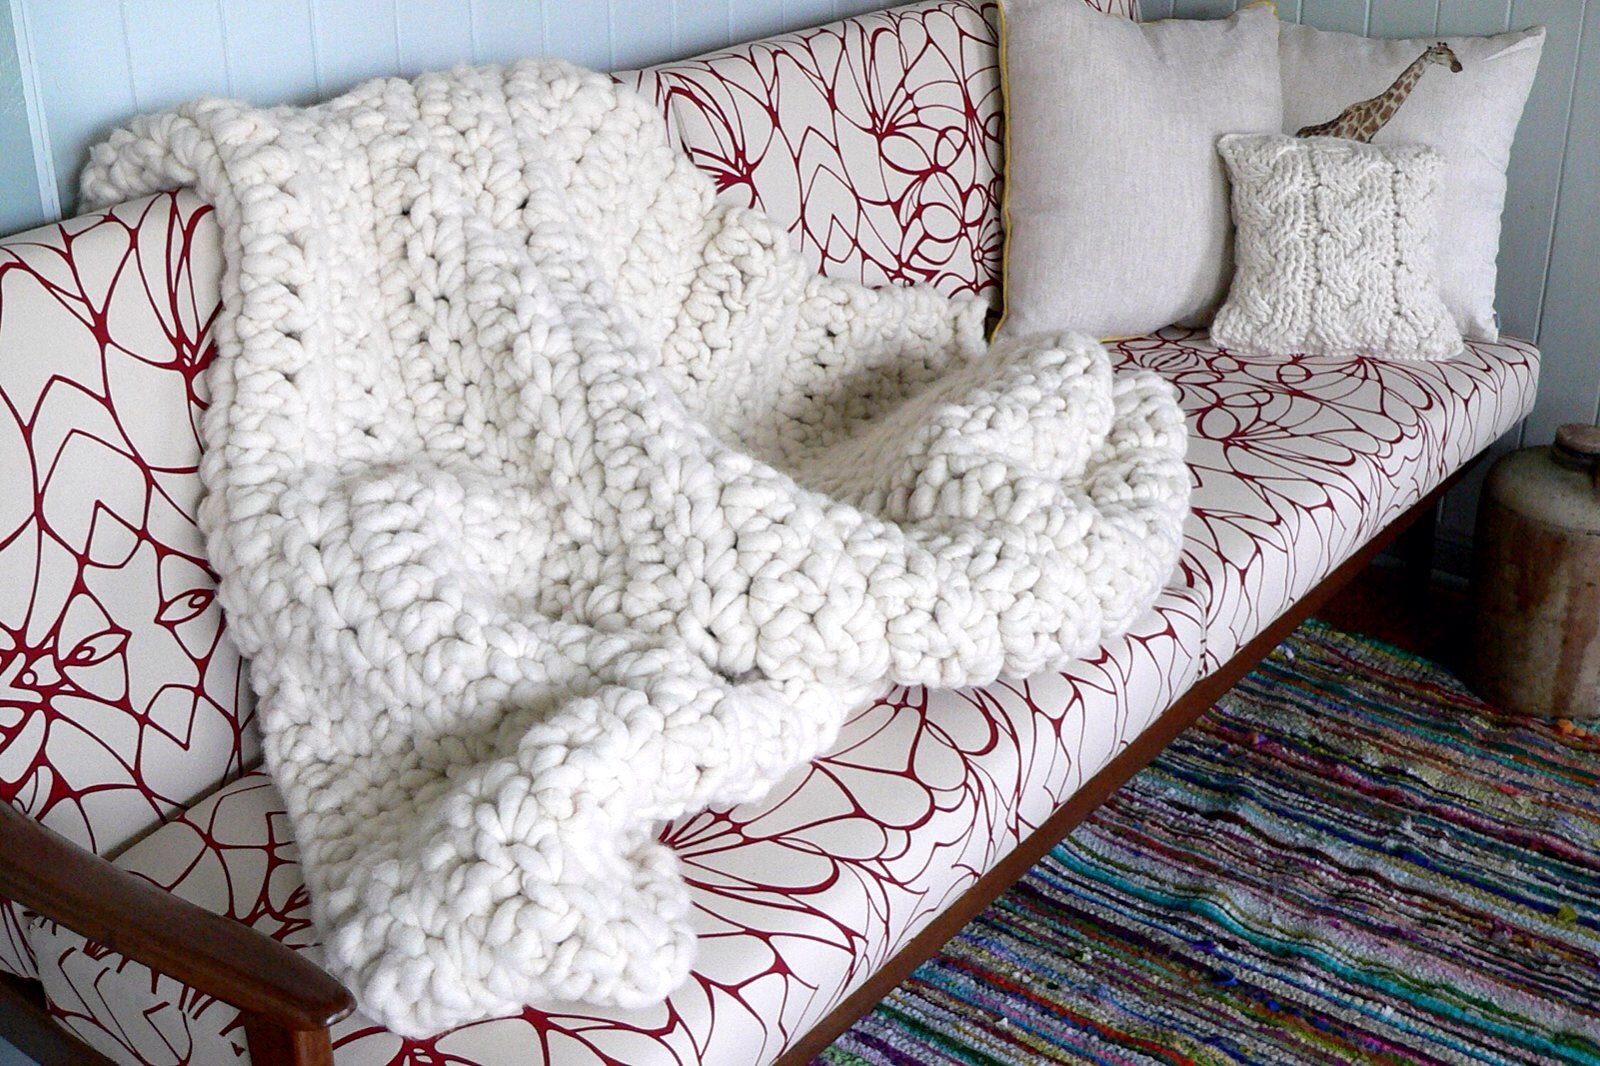 Chunky Yarn Patterns Awesome Free Crochet Afghan Patterns for Bulky Yarn Dancox for Of Adorable 41 Photos Chunky Yarn Patterns